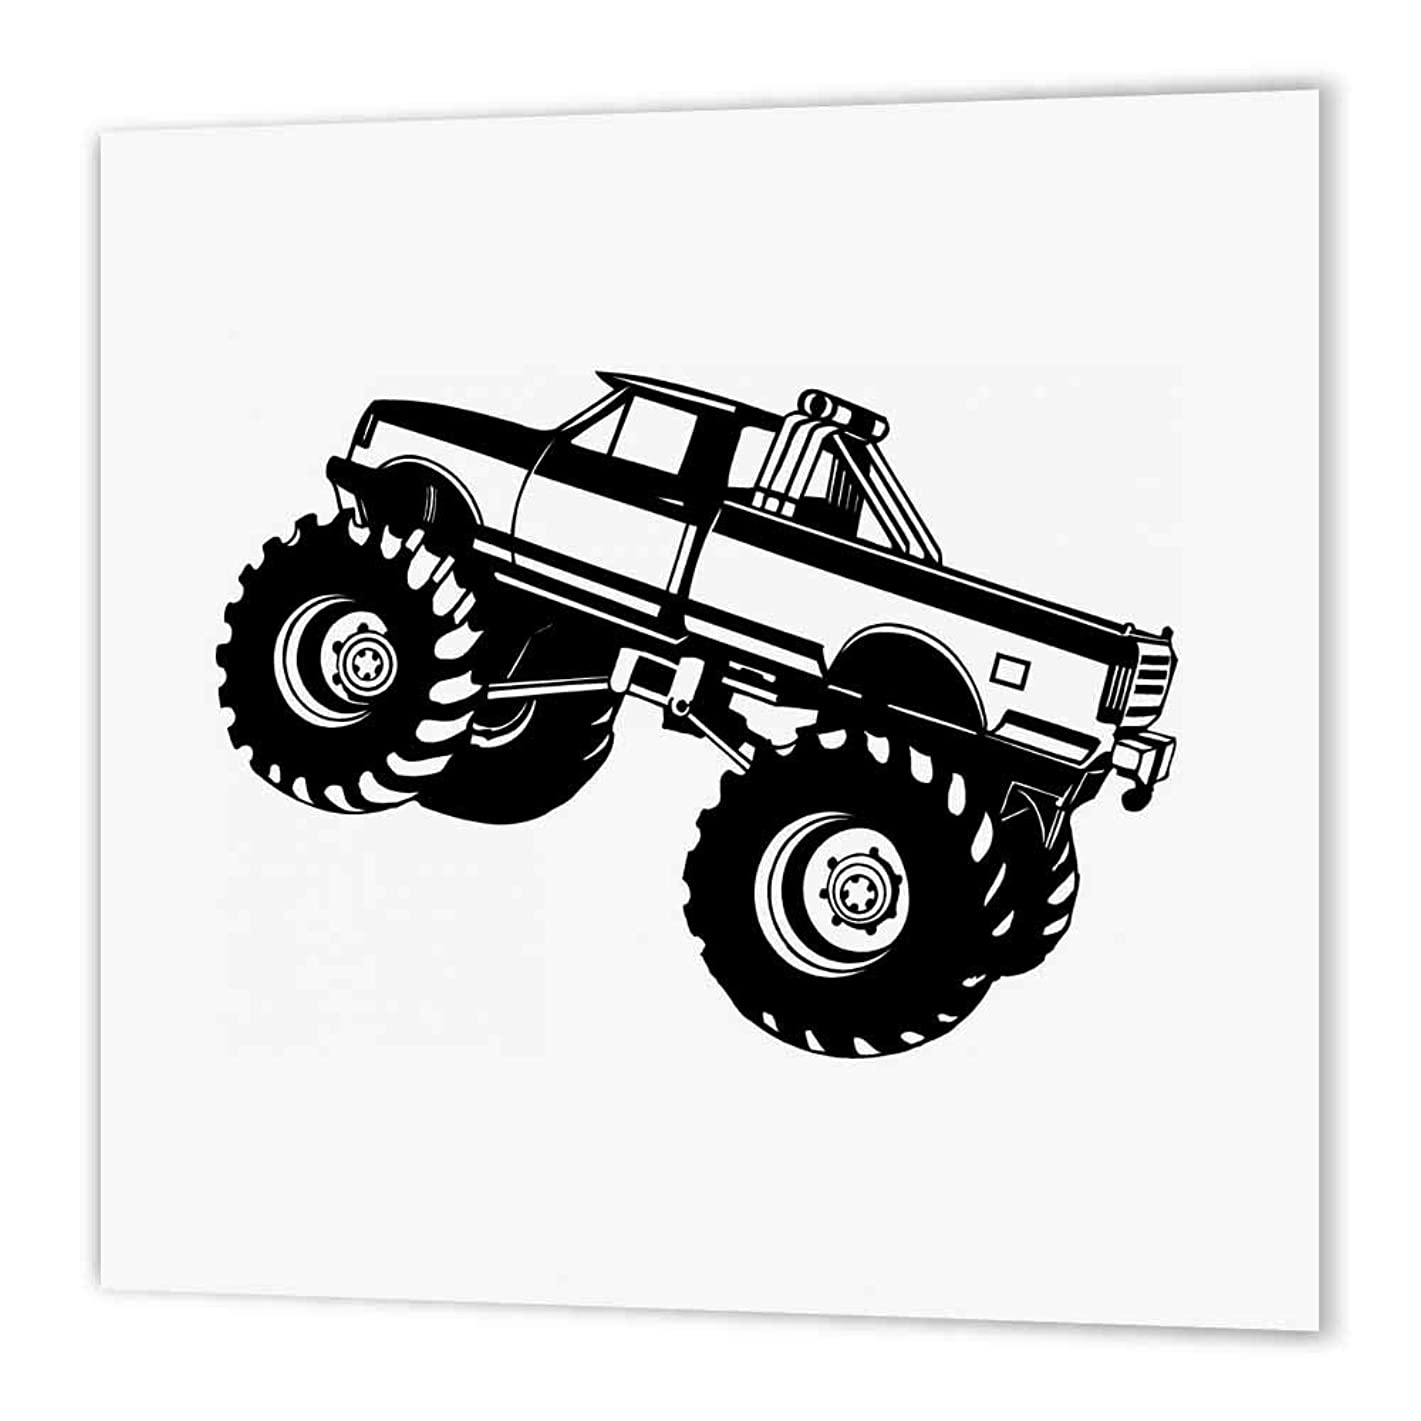 3dRose Monster Truck-Iron on Heat Transfer, 8 by 8